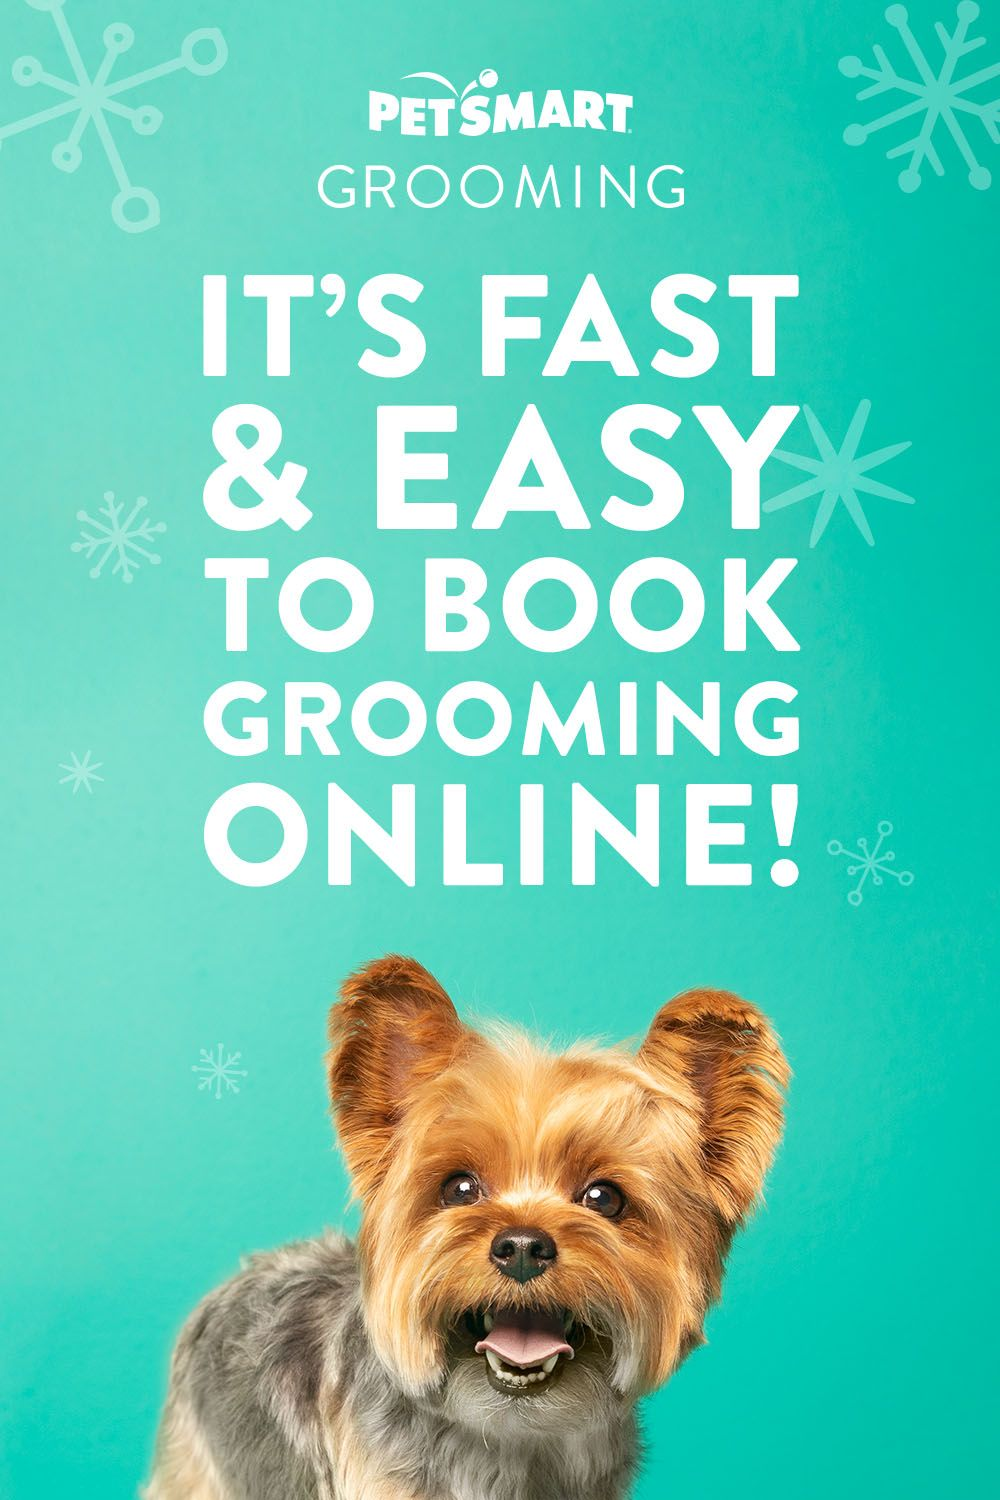 Petsmart Grooming Cute Dogs And Puppies Cat Grooming Dog Grooming